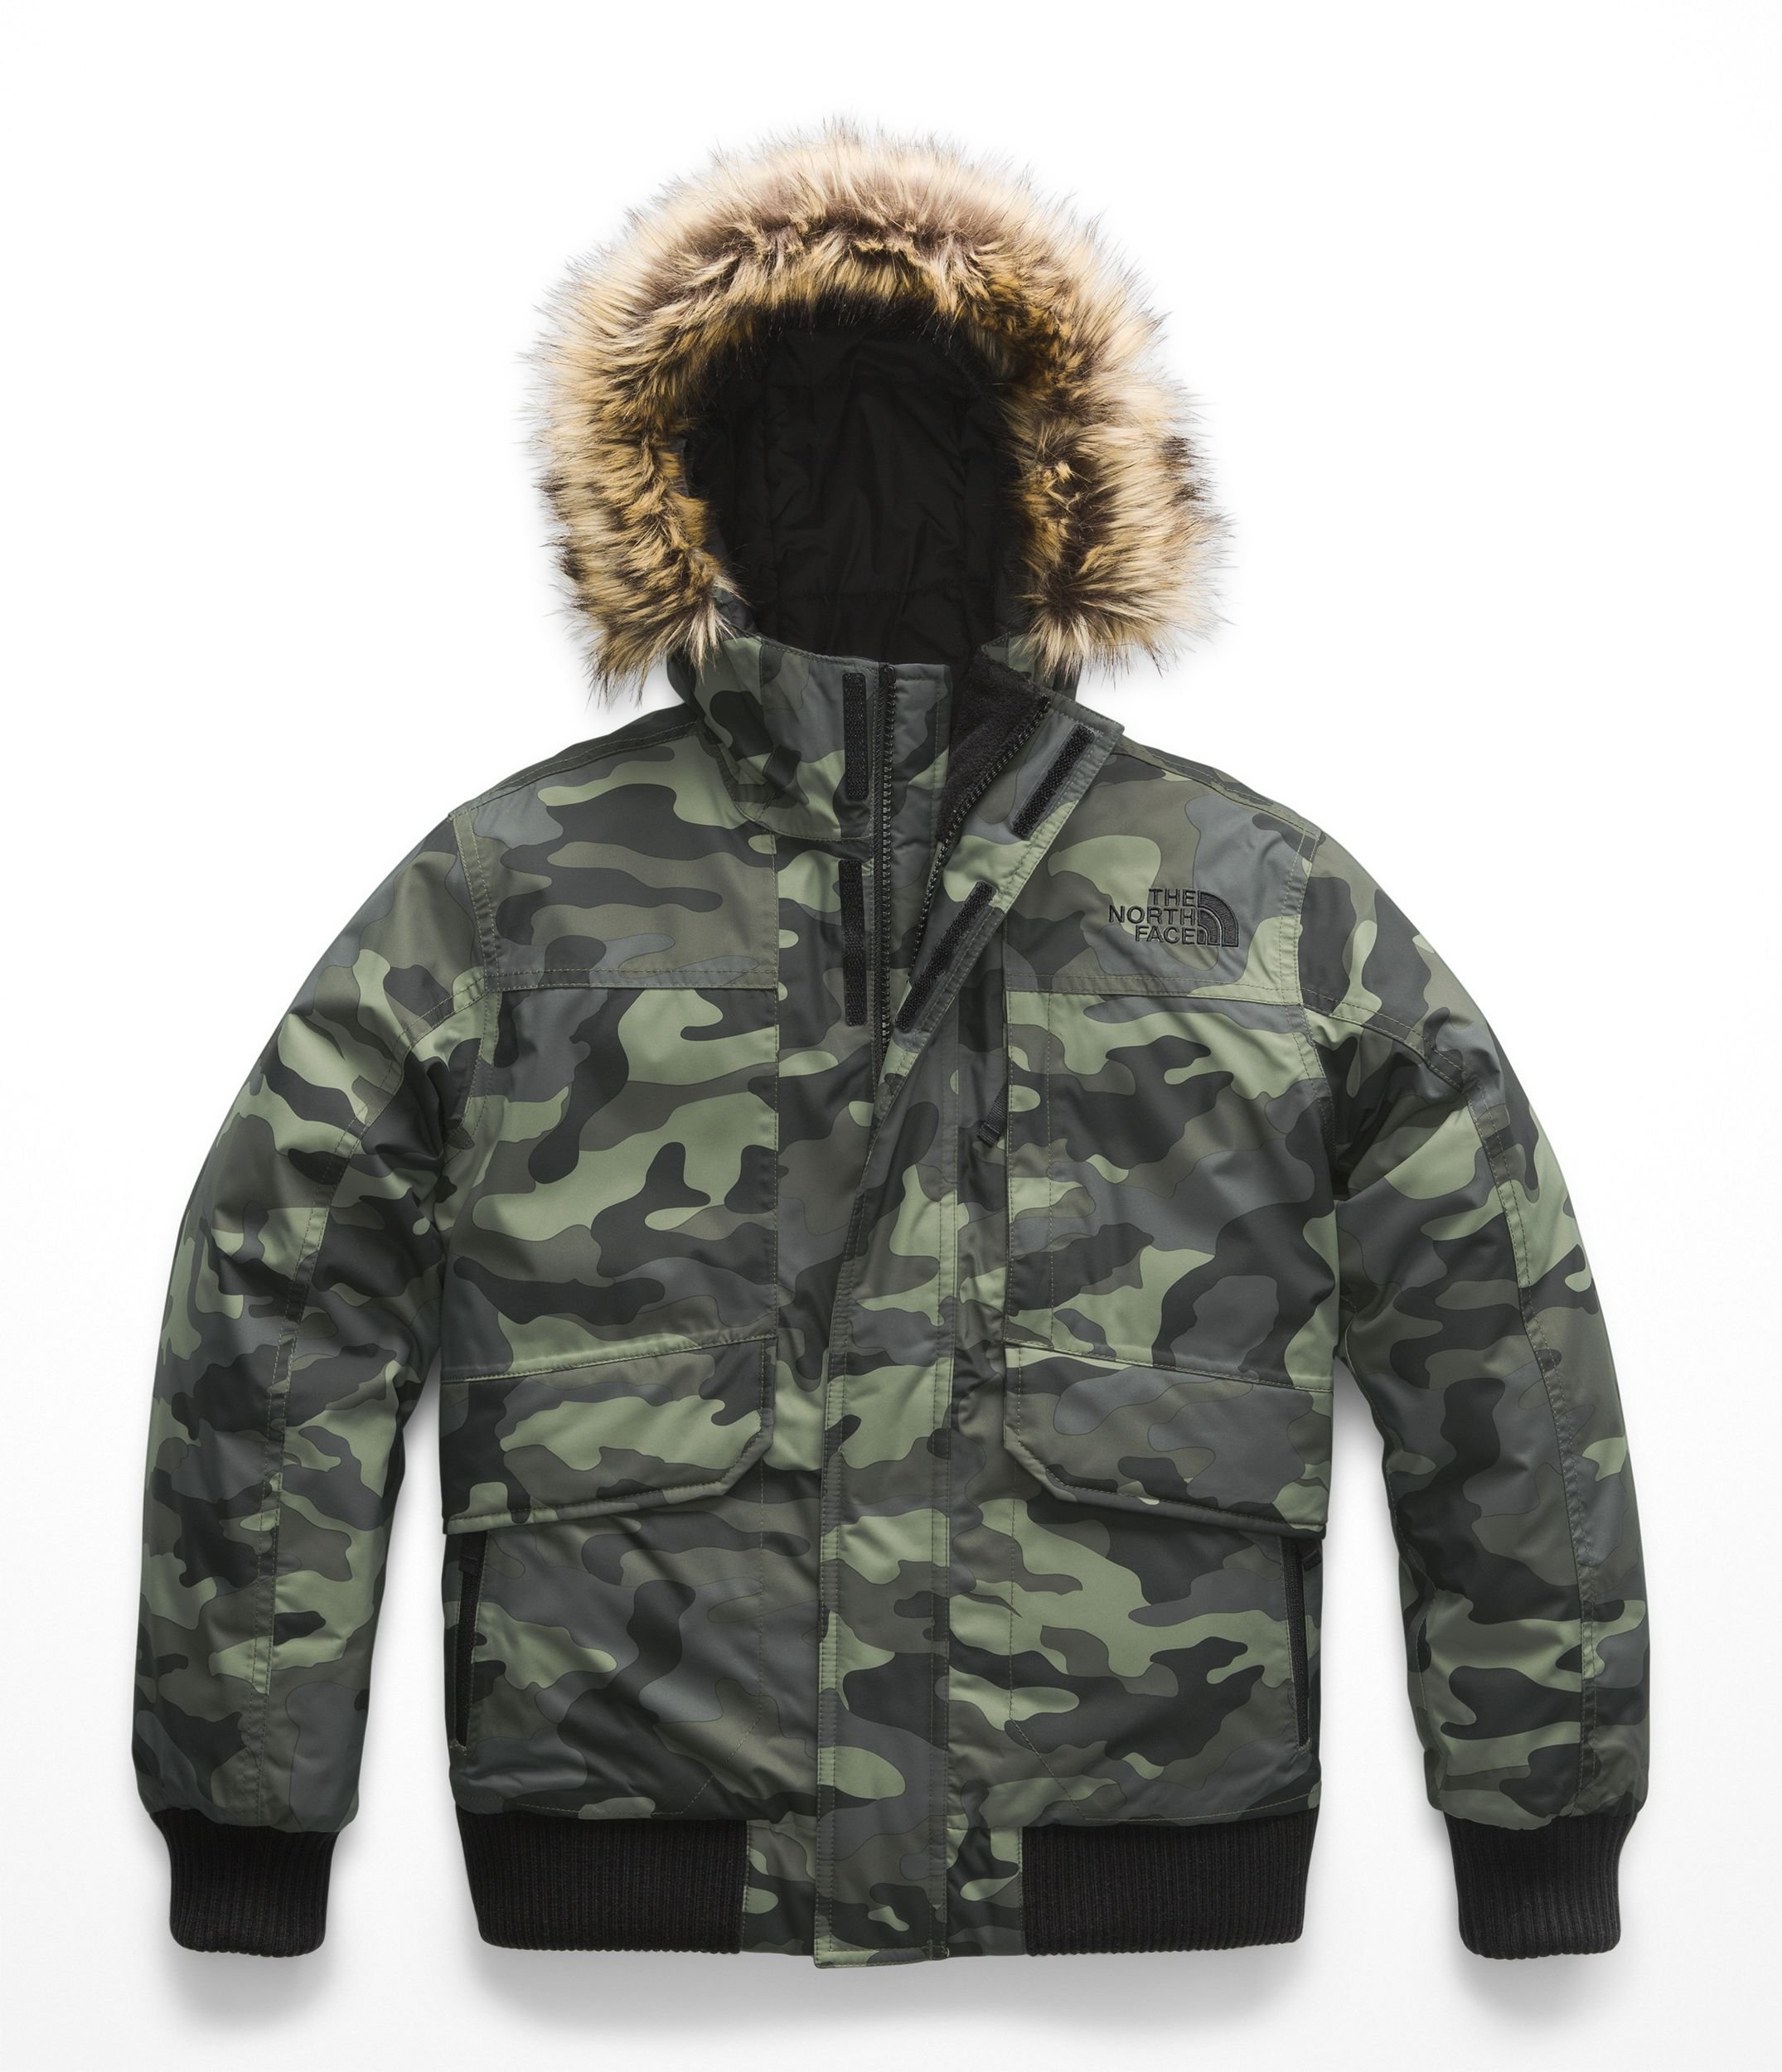 The North Face Boy's Gotham Down Jacket - New Taupe Green Camouflage Print - L by The North Face (Image #1)